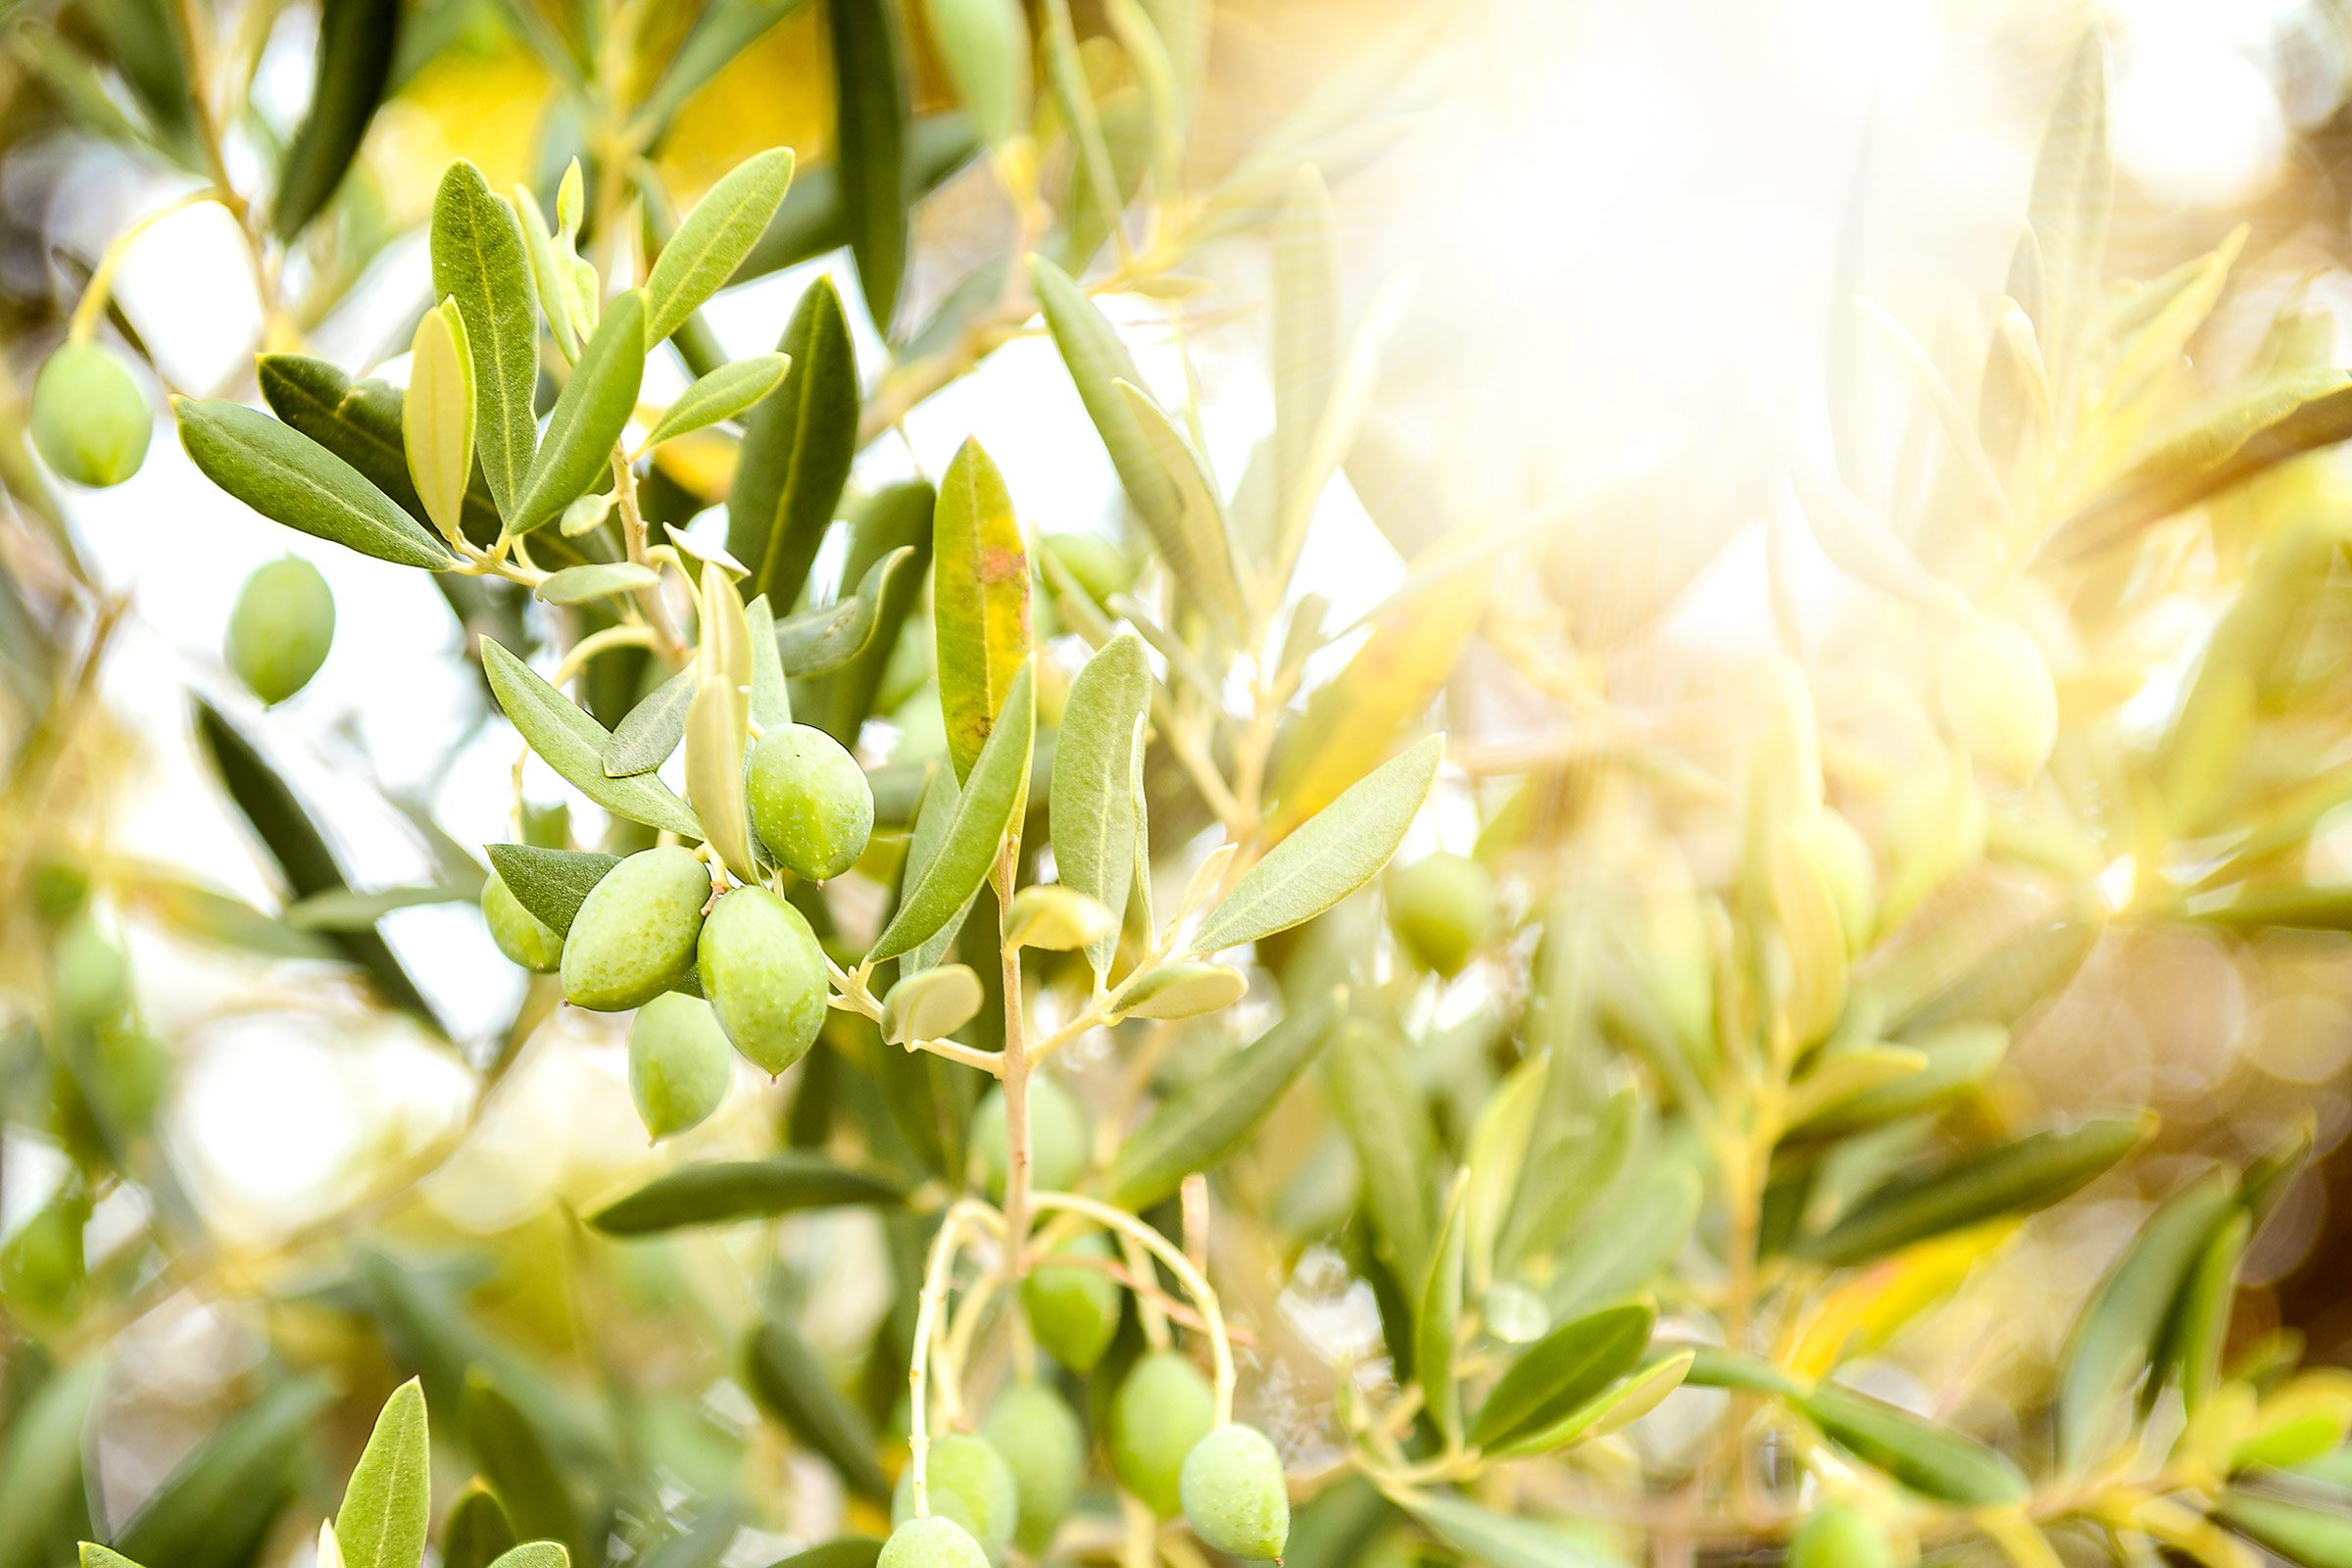 Who knew: It takes 1,375 olives just to make one 32-ounce bottle of olive oil.